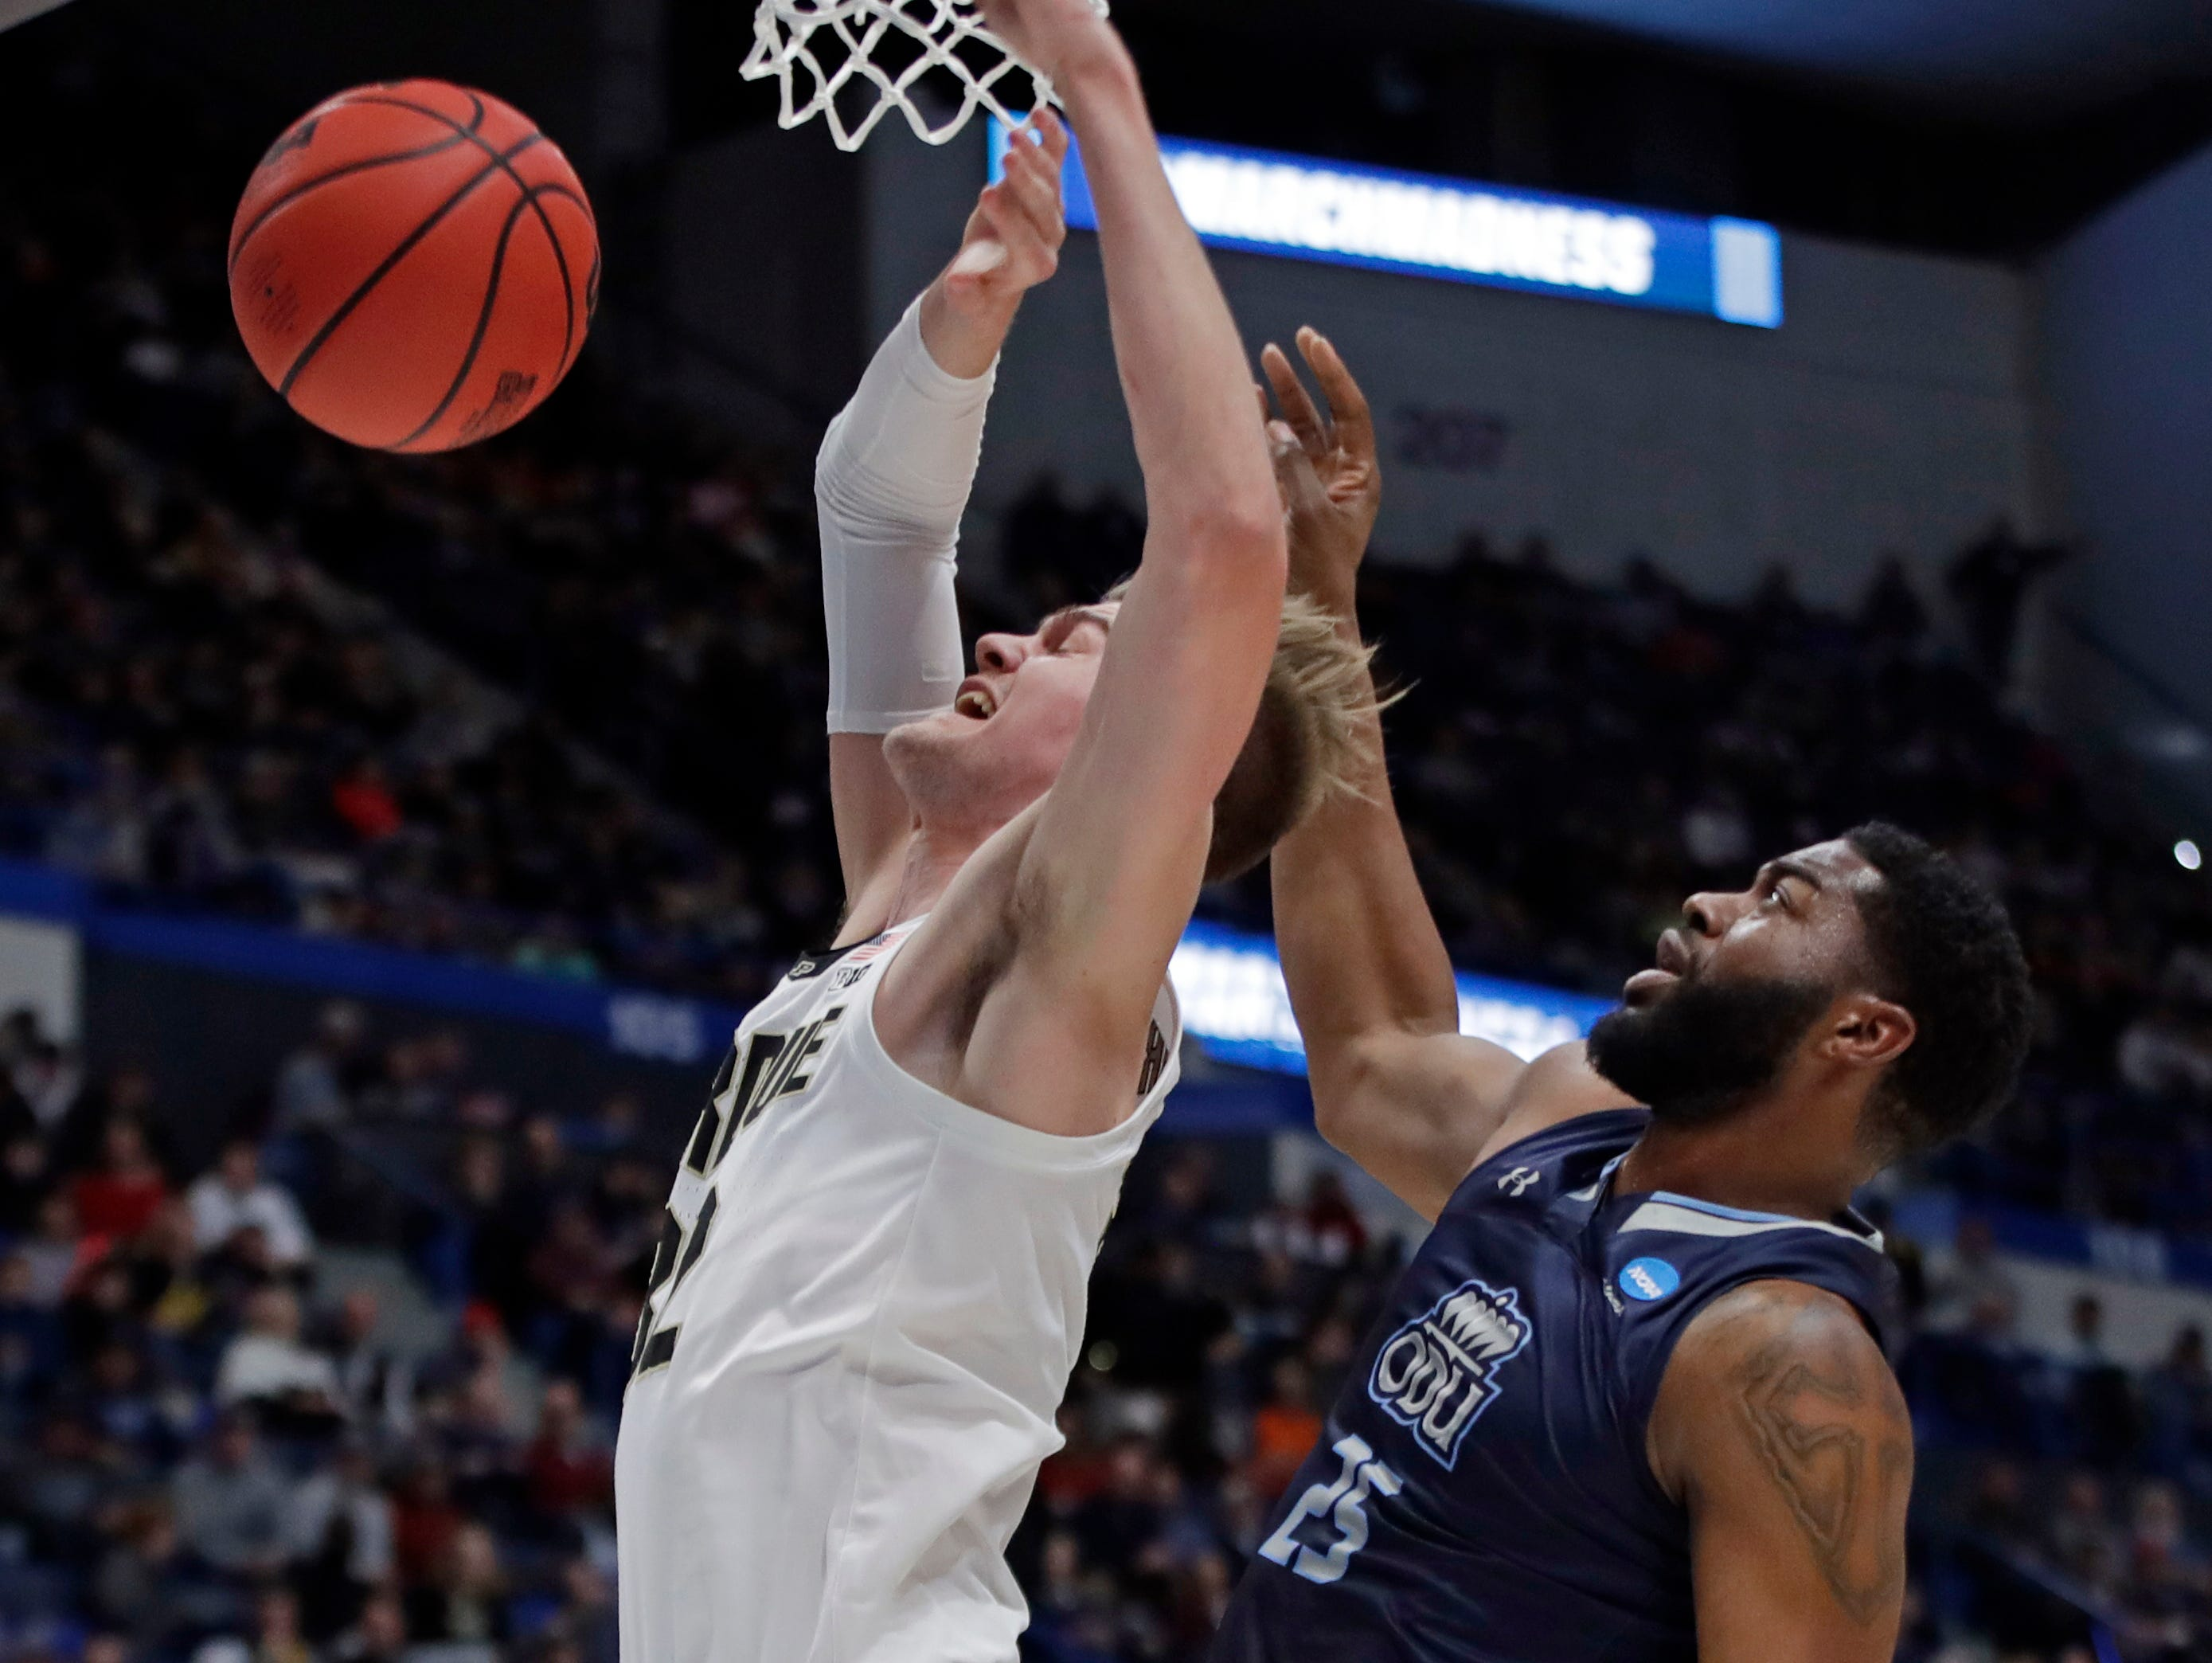 Purdue's Matt Haarms, left, is fouled as he goes to the hoop by Old Dominion's Elbert Robinson III (25) during the first half of a first round men's college basketball game in the NCAA Tournament, Thursday, March 21, 2019, in Hartford, Conn.